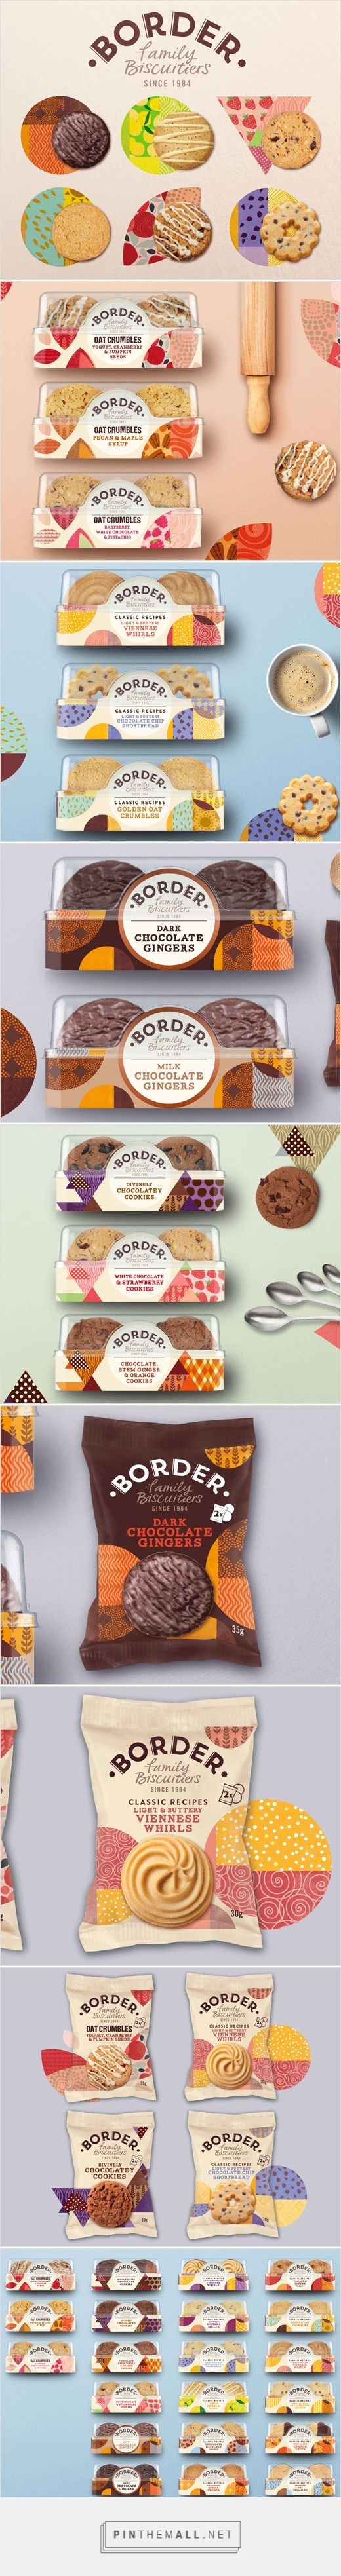 Border Biscuits by Coley Porter Bell